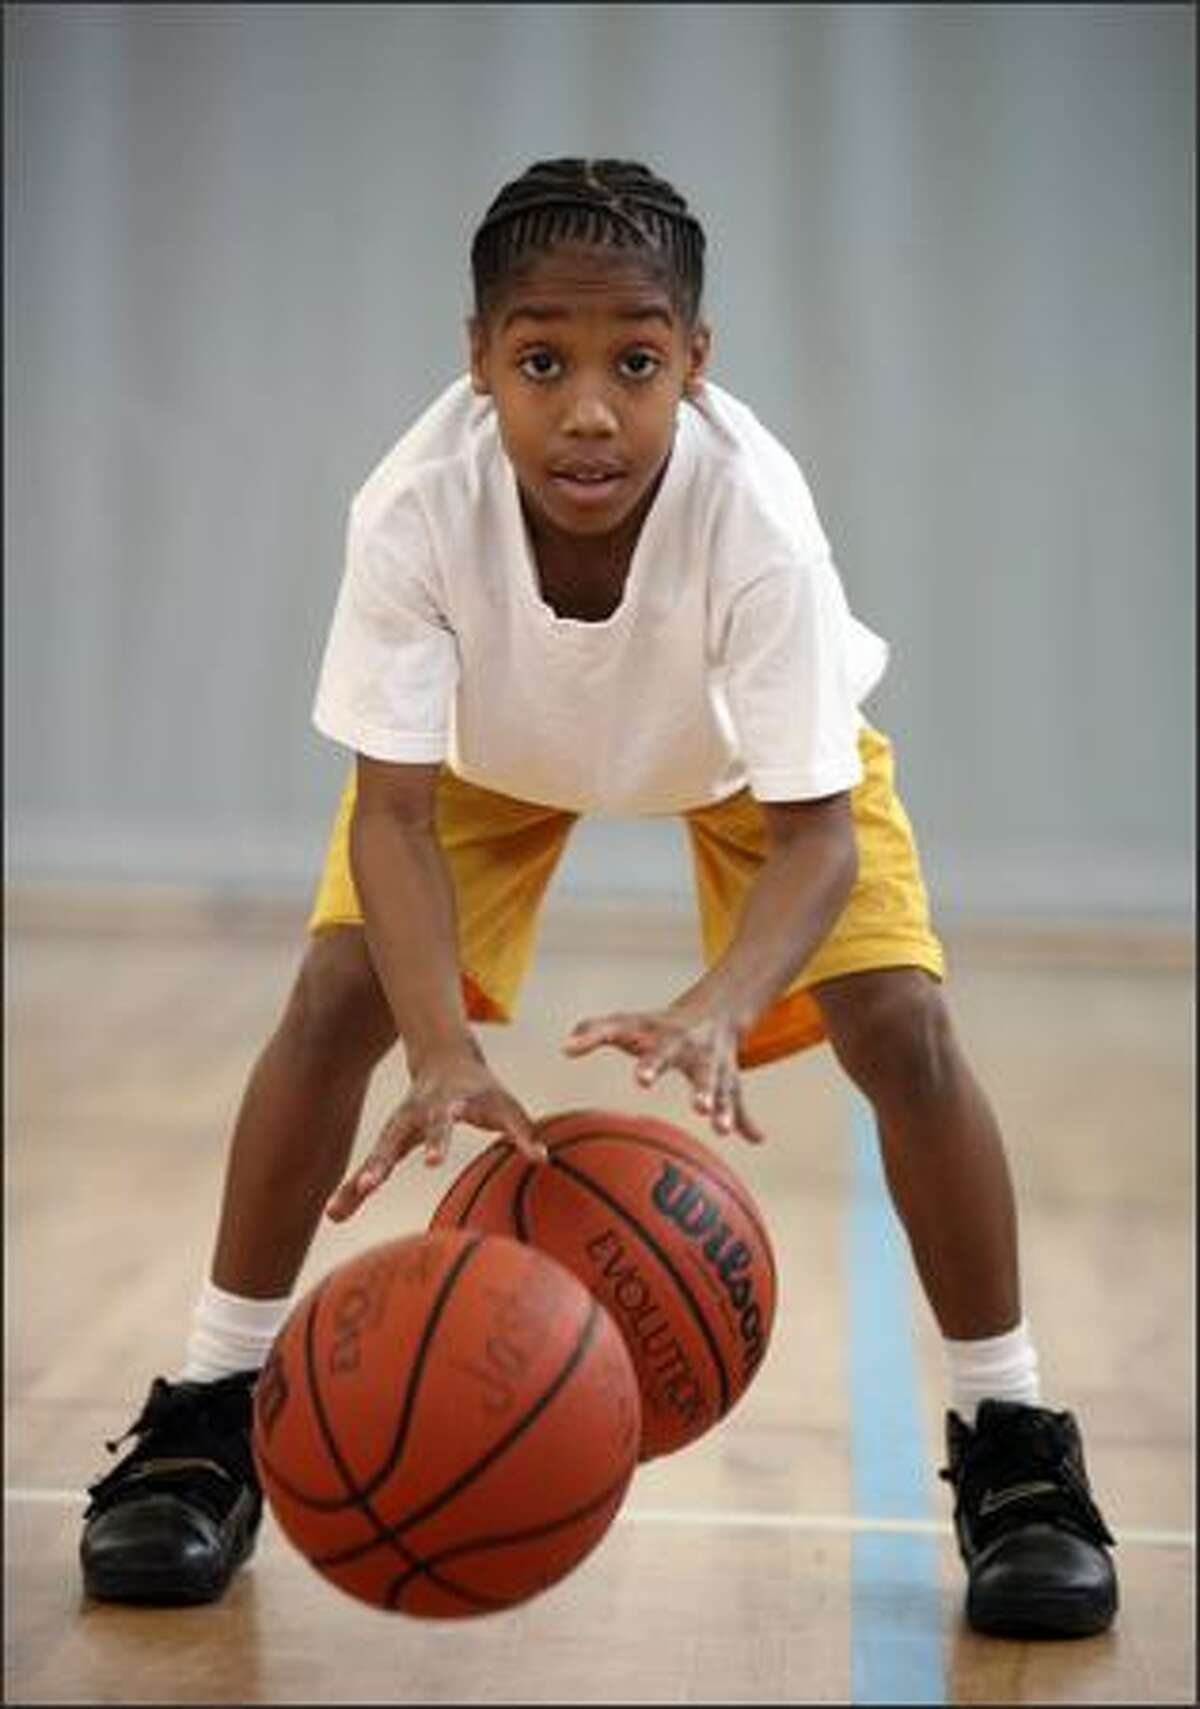 Jashuan Agosto, 11, practices his skills at the Federal Way Community Center.